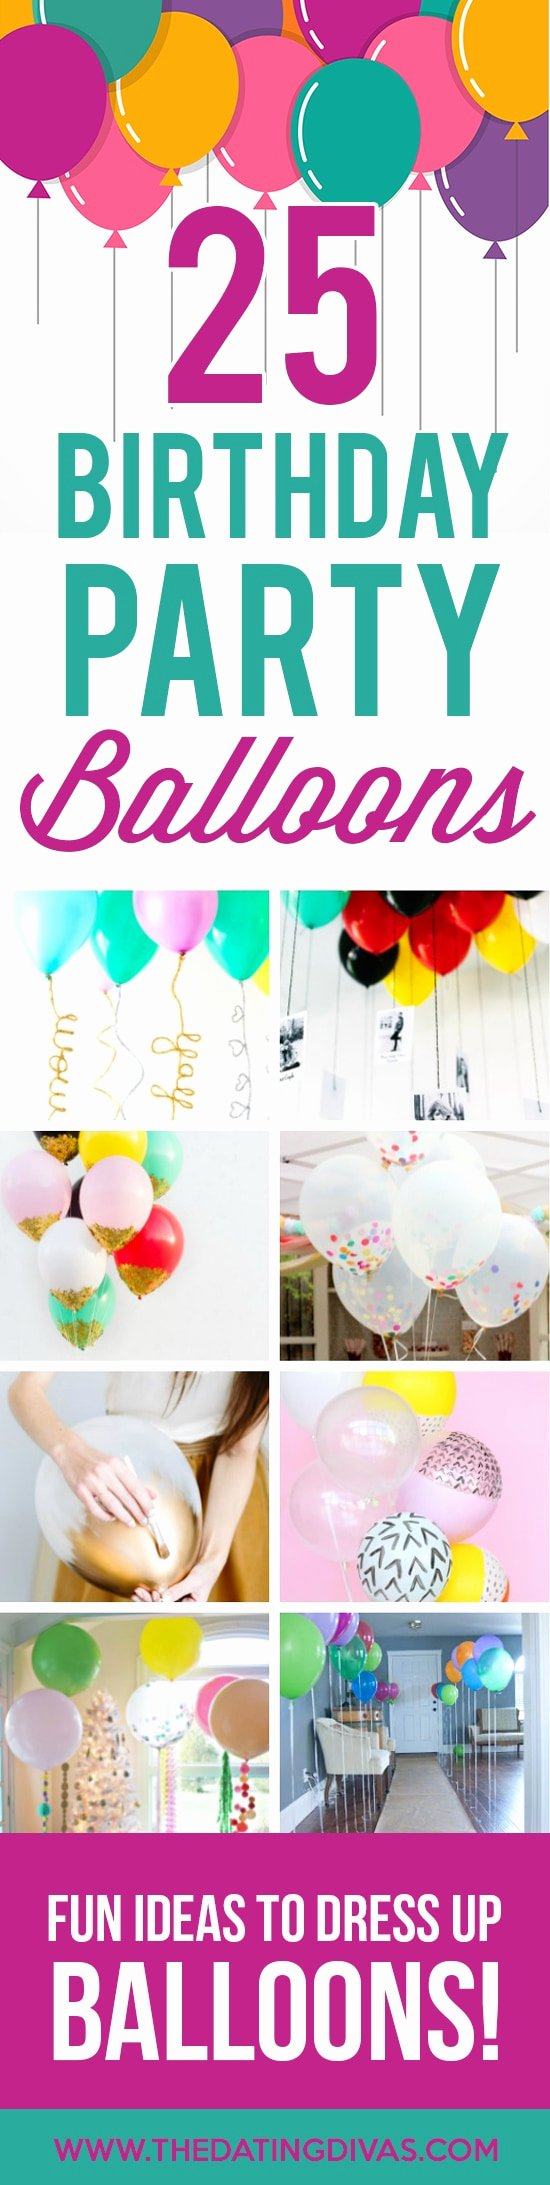 Sister Birthday Decoration Ideas New 100 Birthday Party Decoration Ideas the Dating Divas